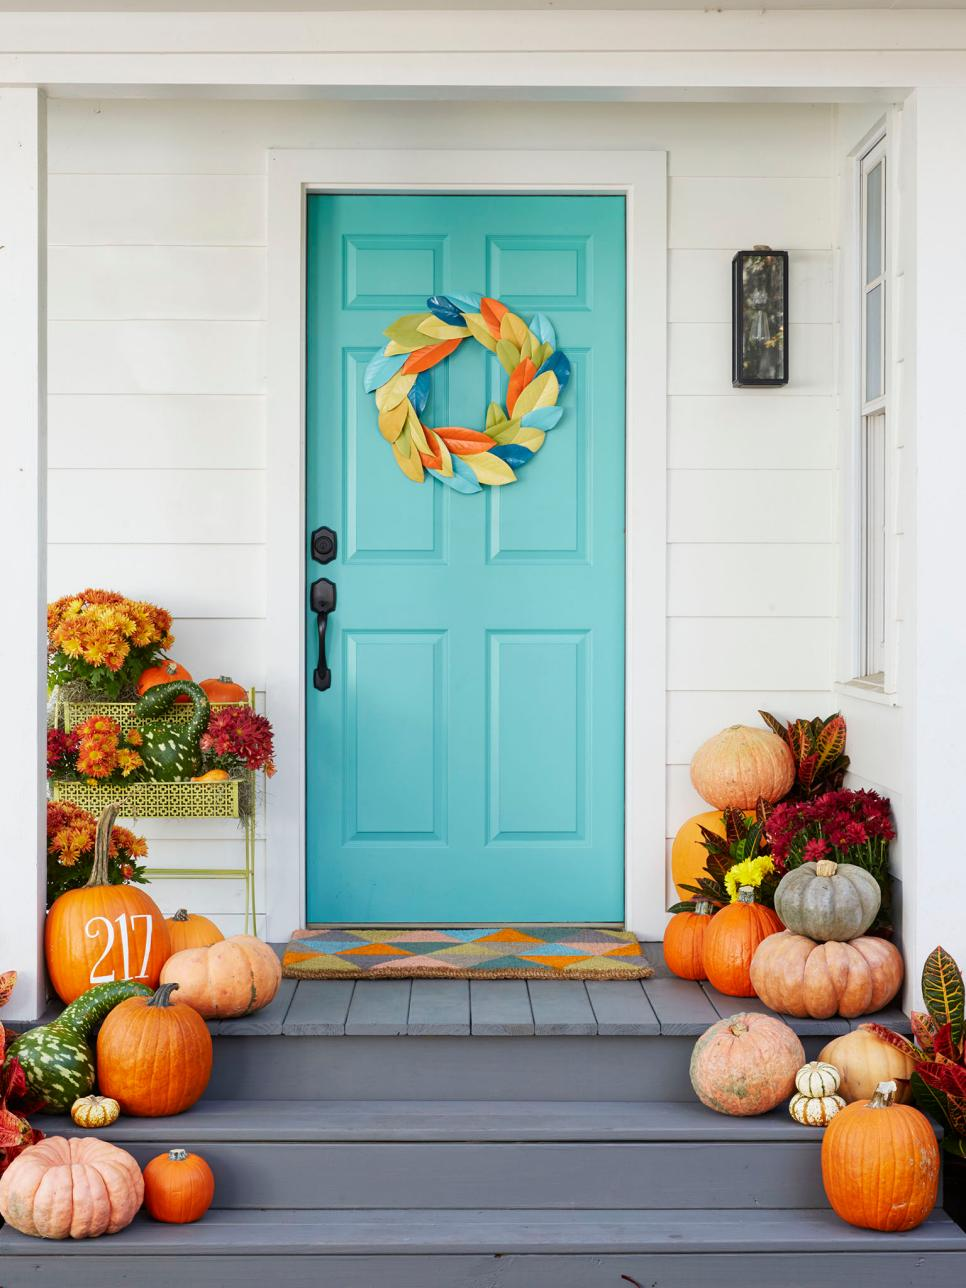 Our favorite fall decorating ideas hgtv How to decorate your house for thanksgiving